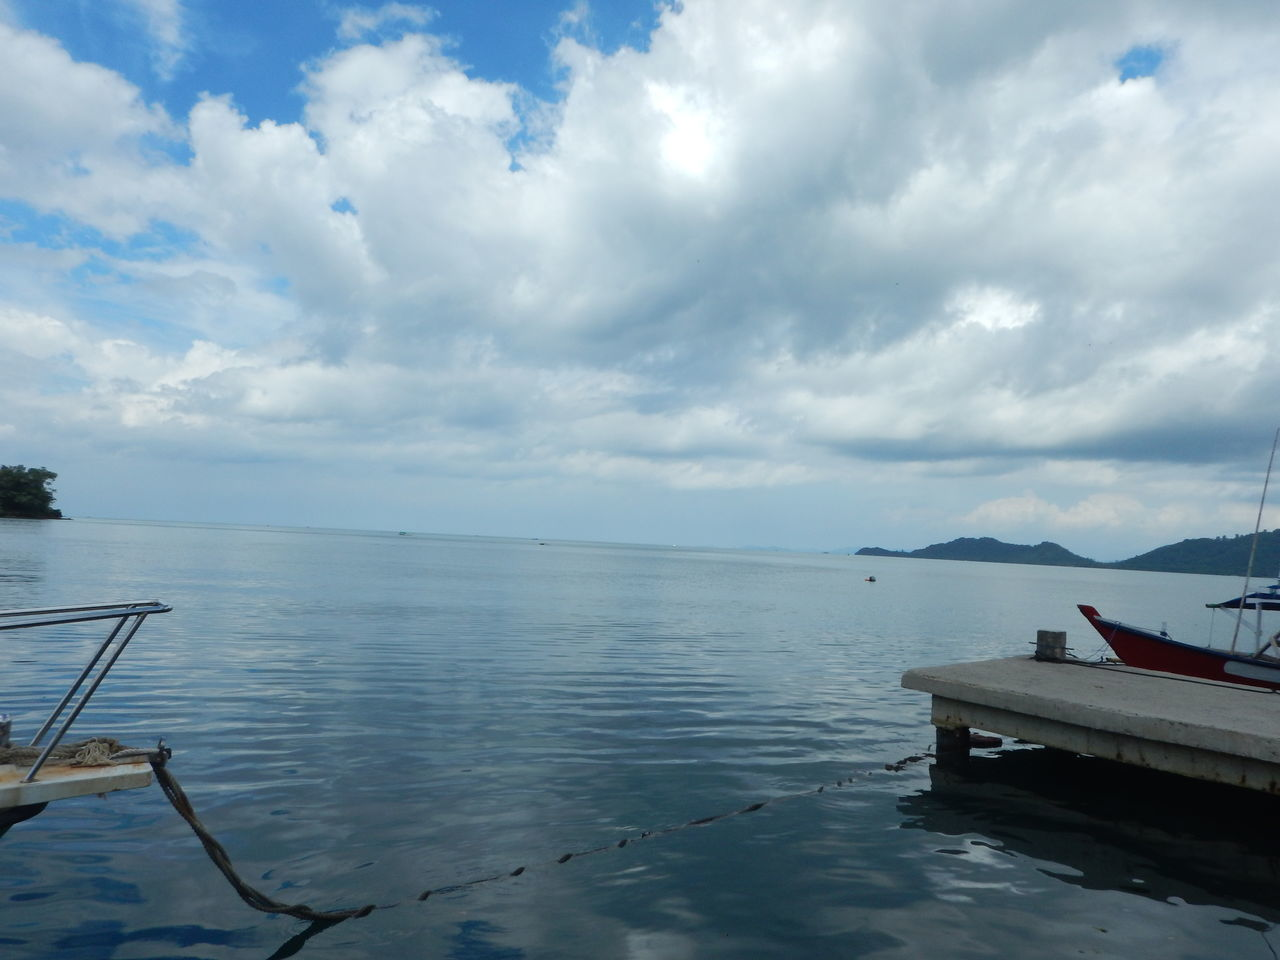 water, cloud - sky, sky, sea, scenics, nature, beauty in nature, tranquility, no people, nautical vessel, tranquil scene, outdoors, day, horizon over water